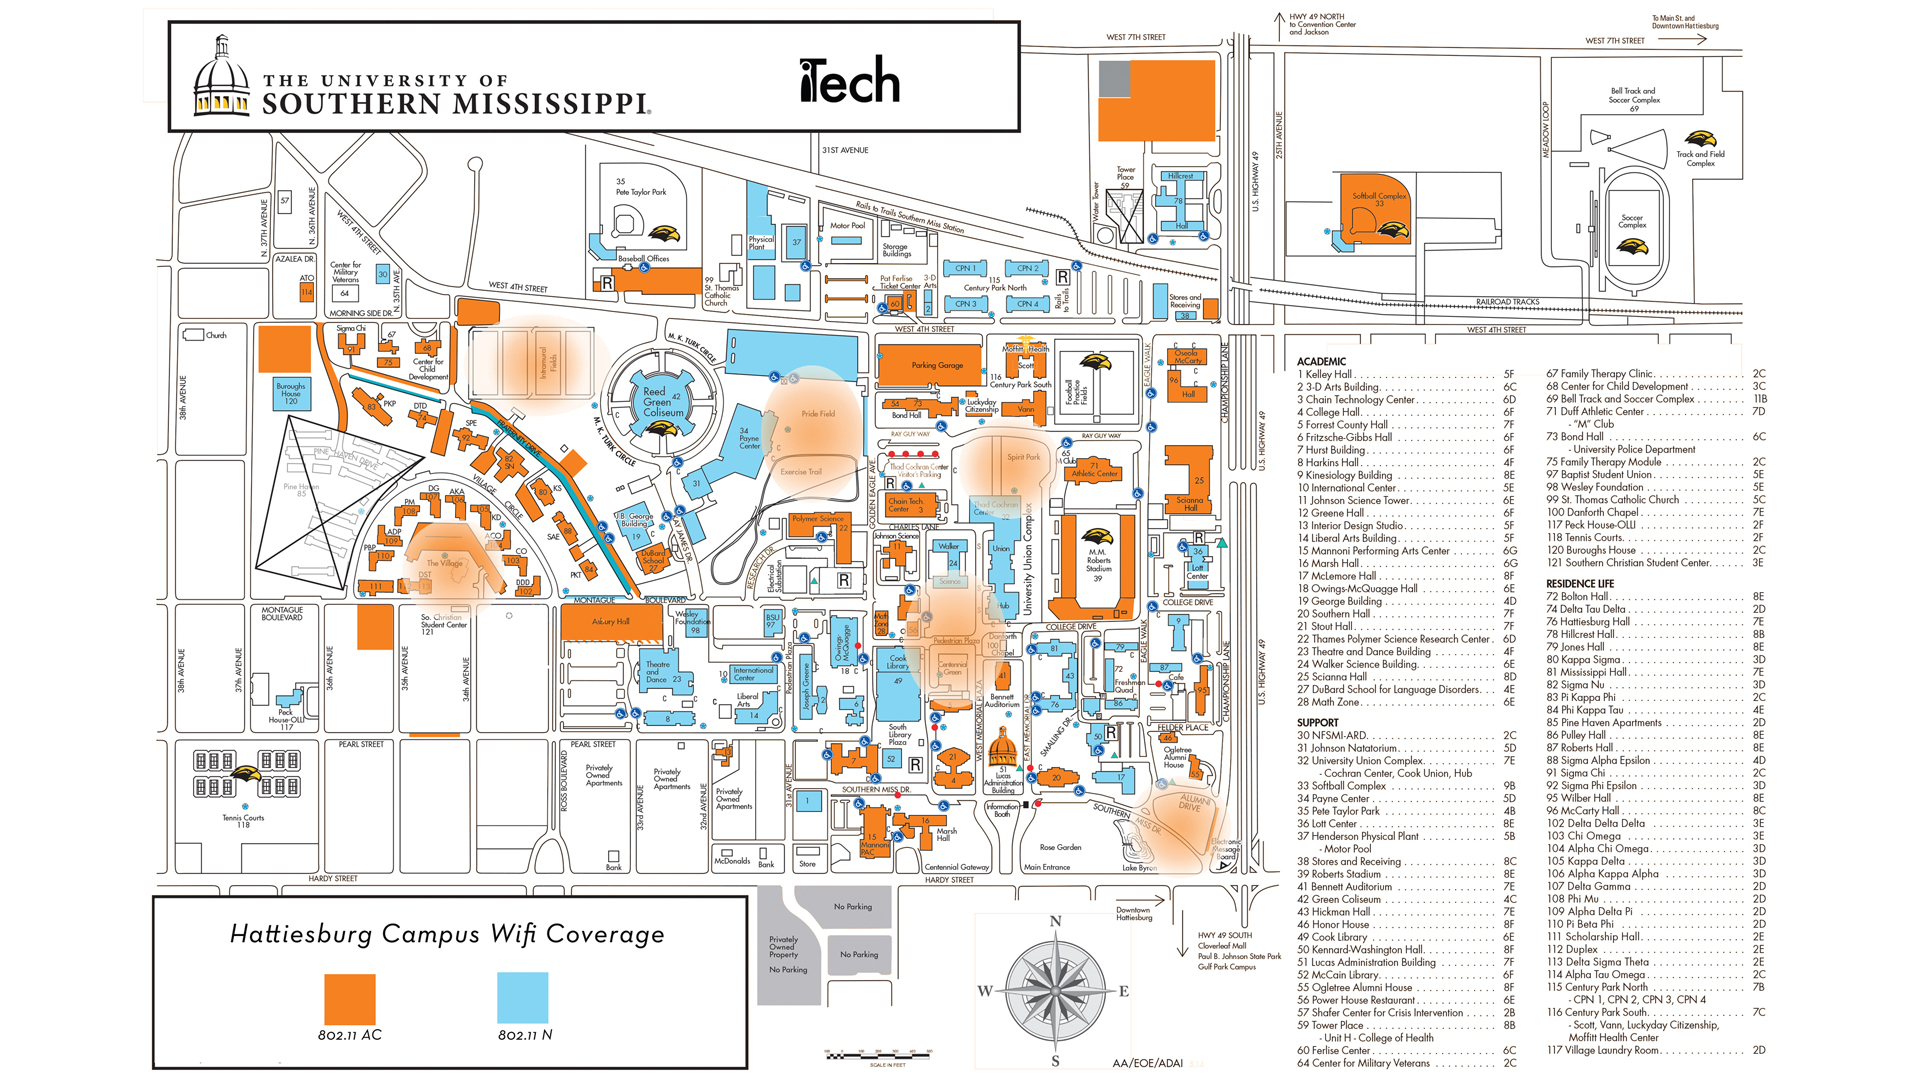 usm hattiesburg campus map For Students With Limited Internet Services Itech The usm hattiesburg campus map